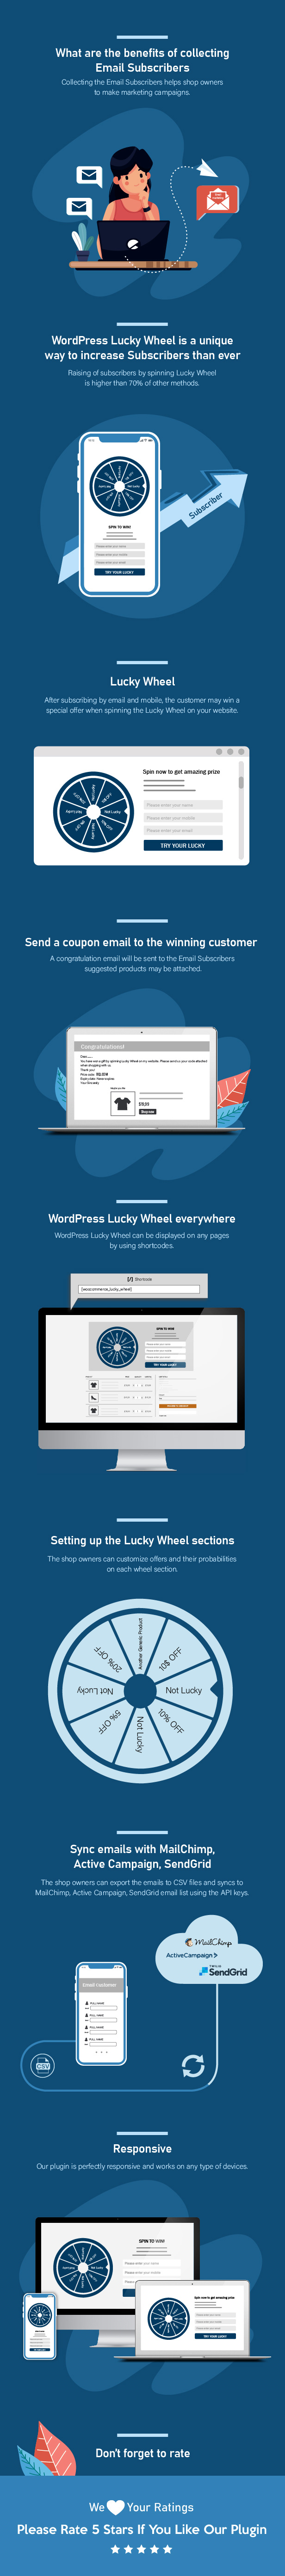 Infographic WordPress Lucky Wheel